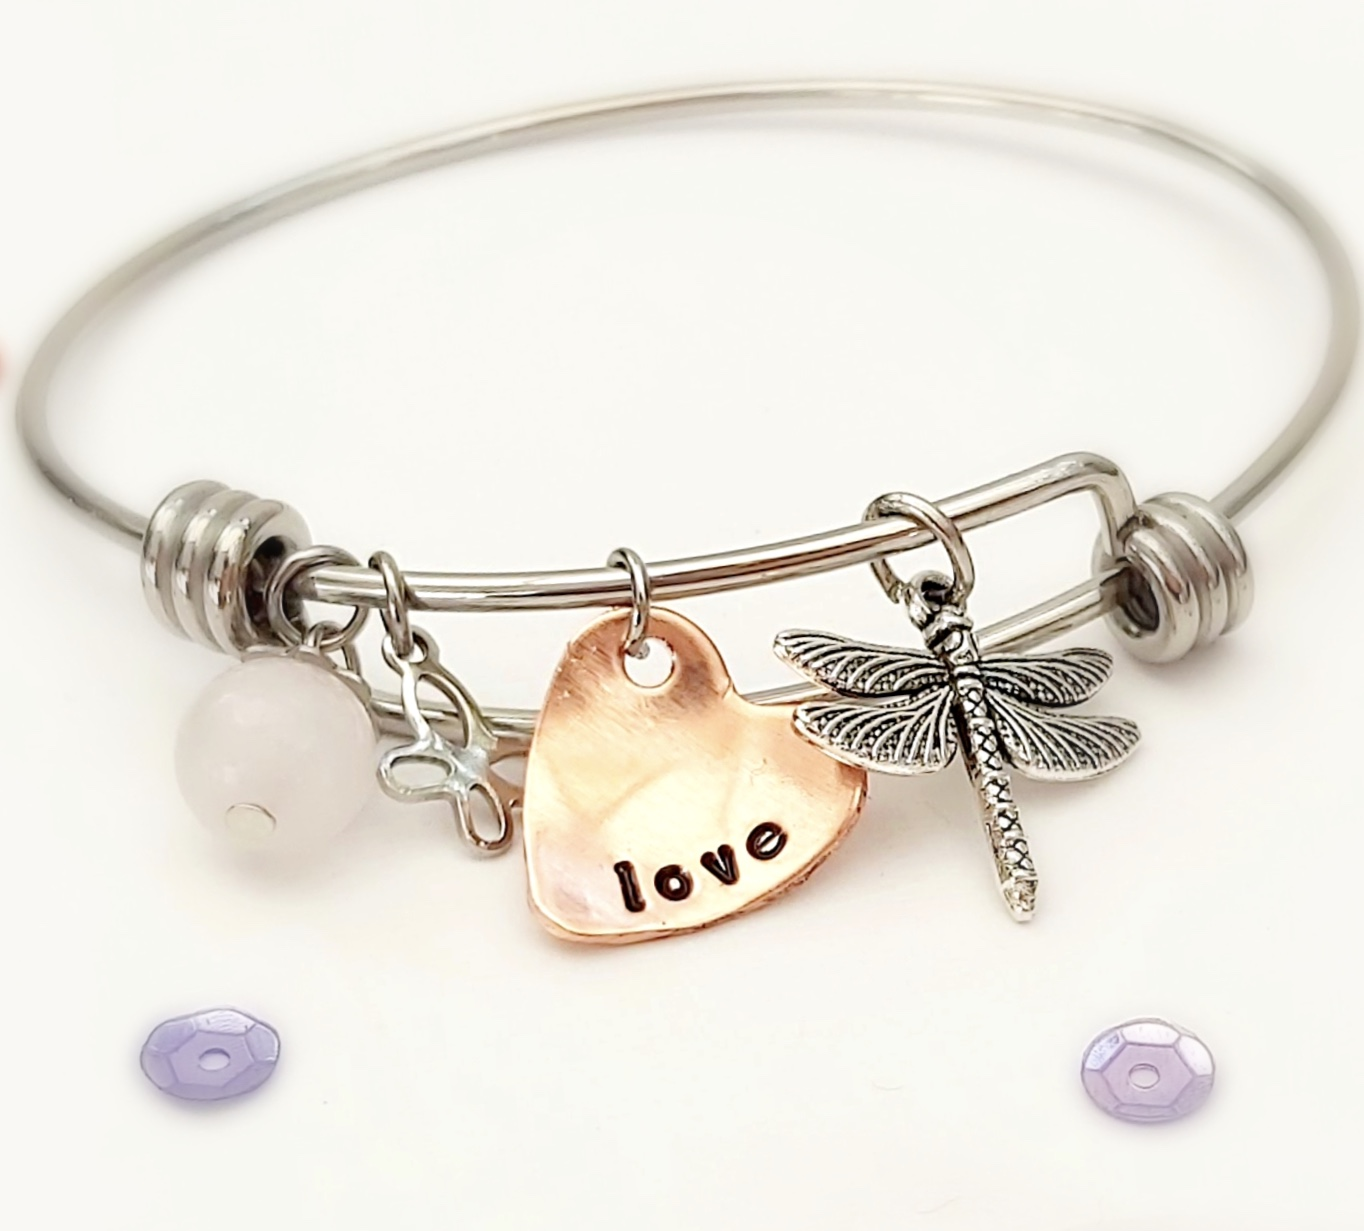 Bangle Bracelet With 'Love' Wording & Charms